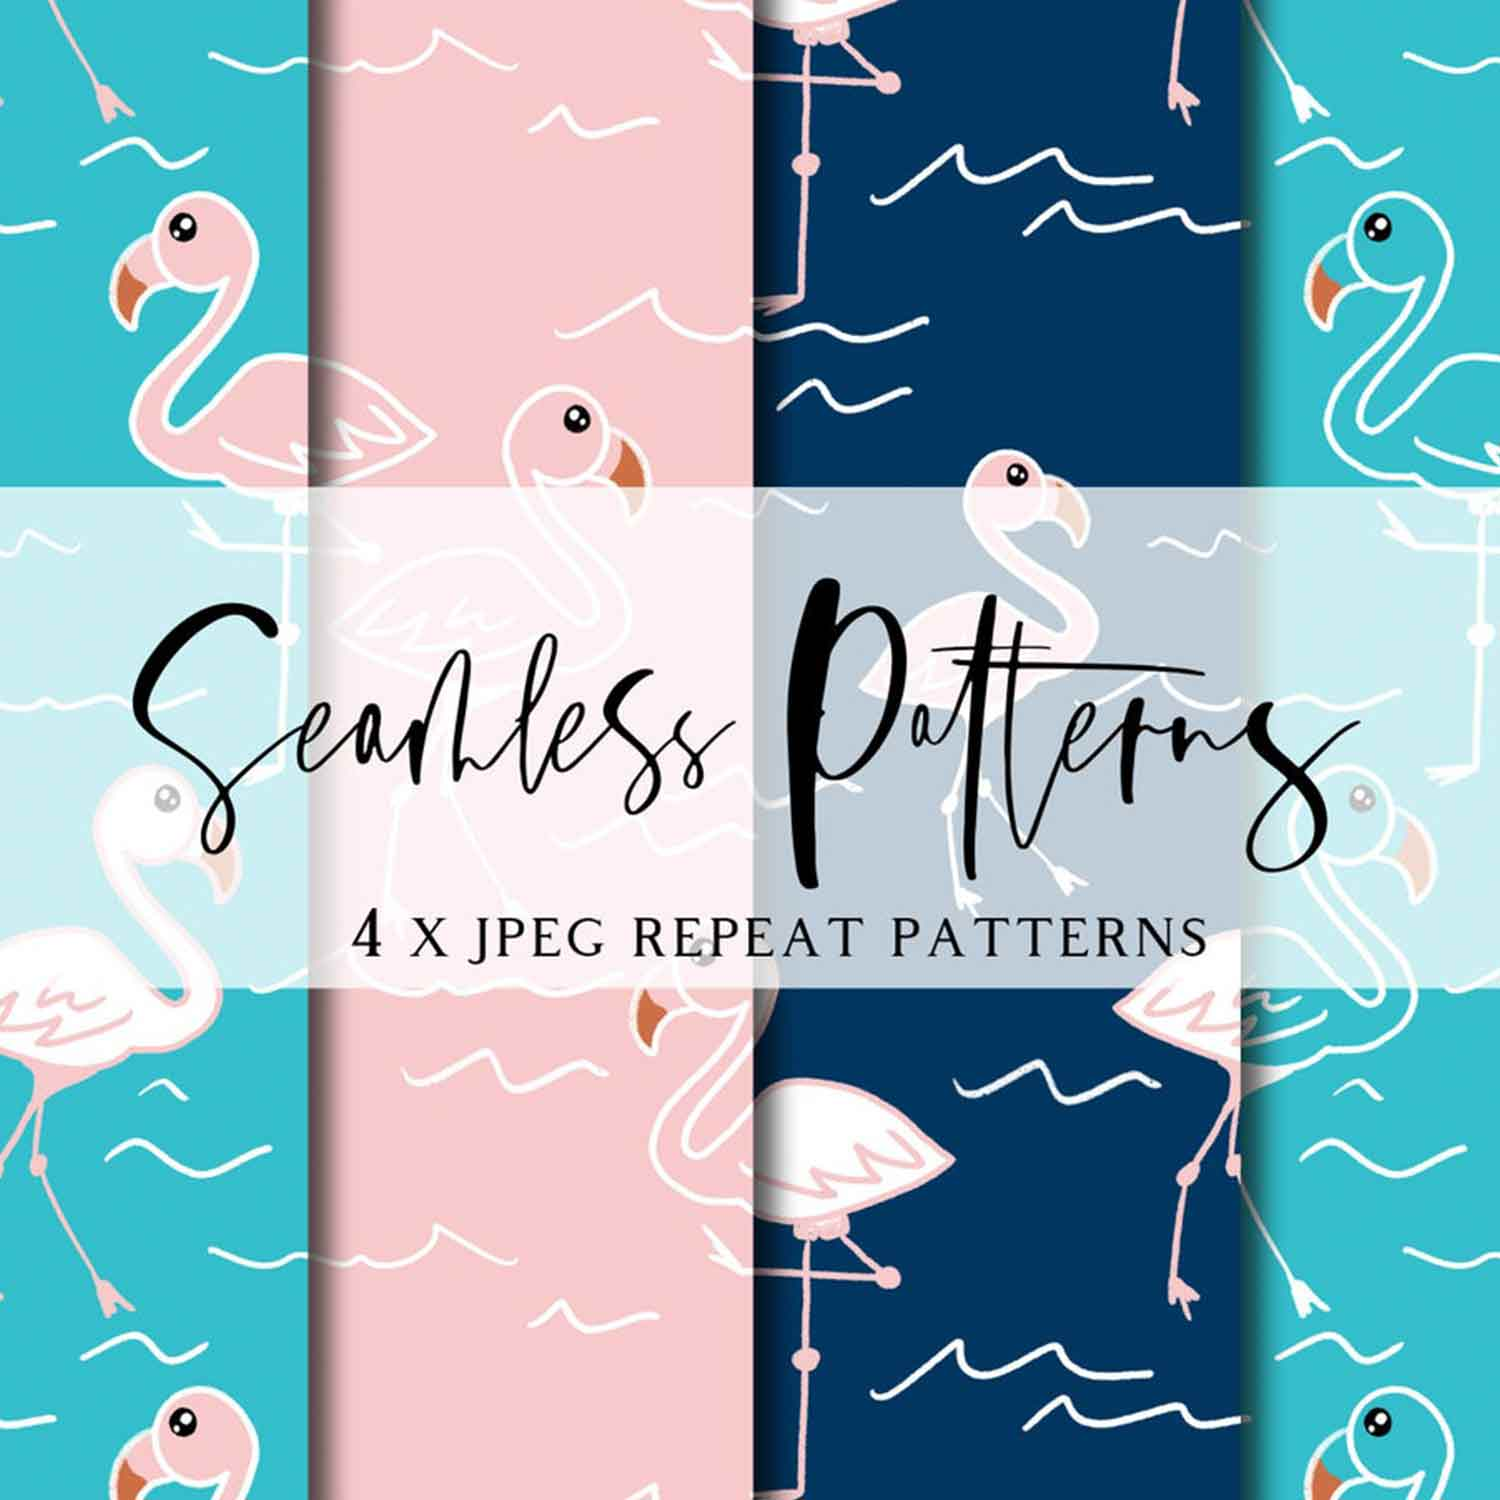 Flamingo Flair Repeat Pattern | Non Exclusive, personal, or commercial use - Kalaii Creations